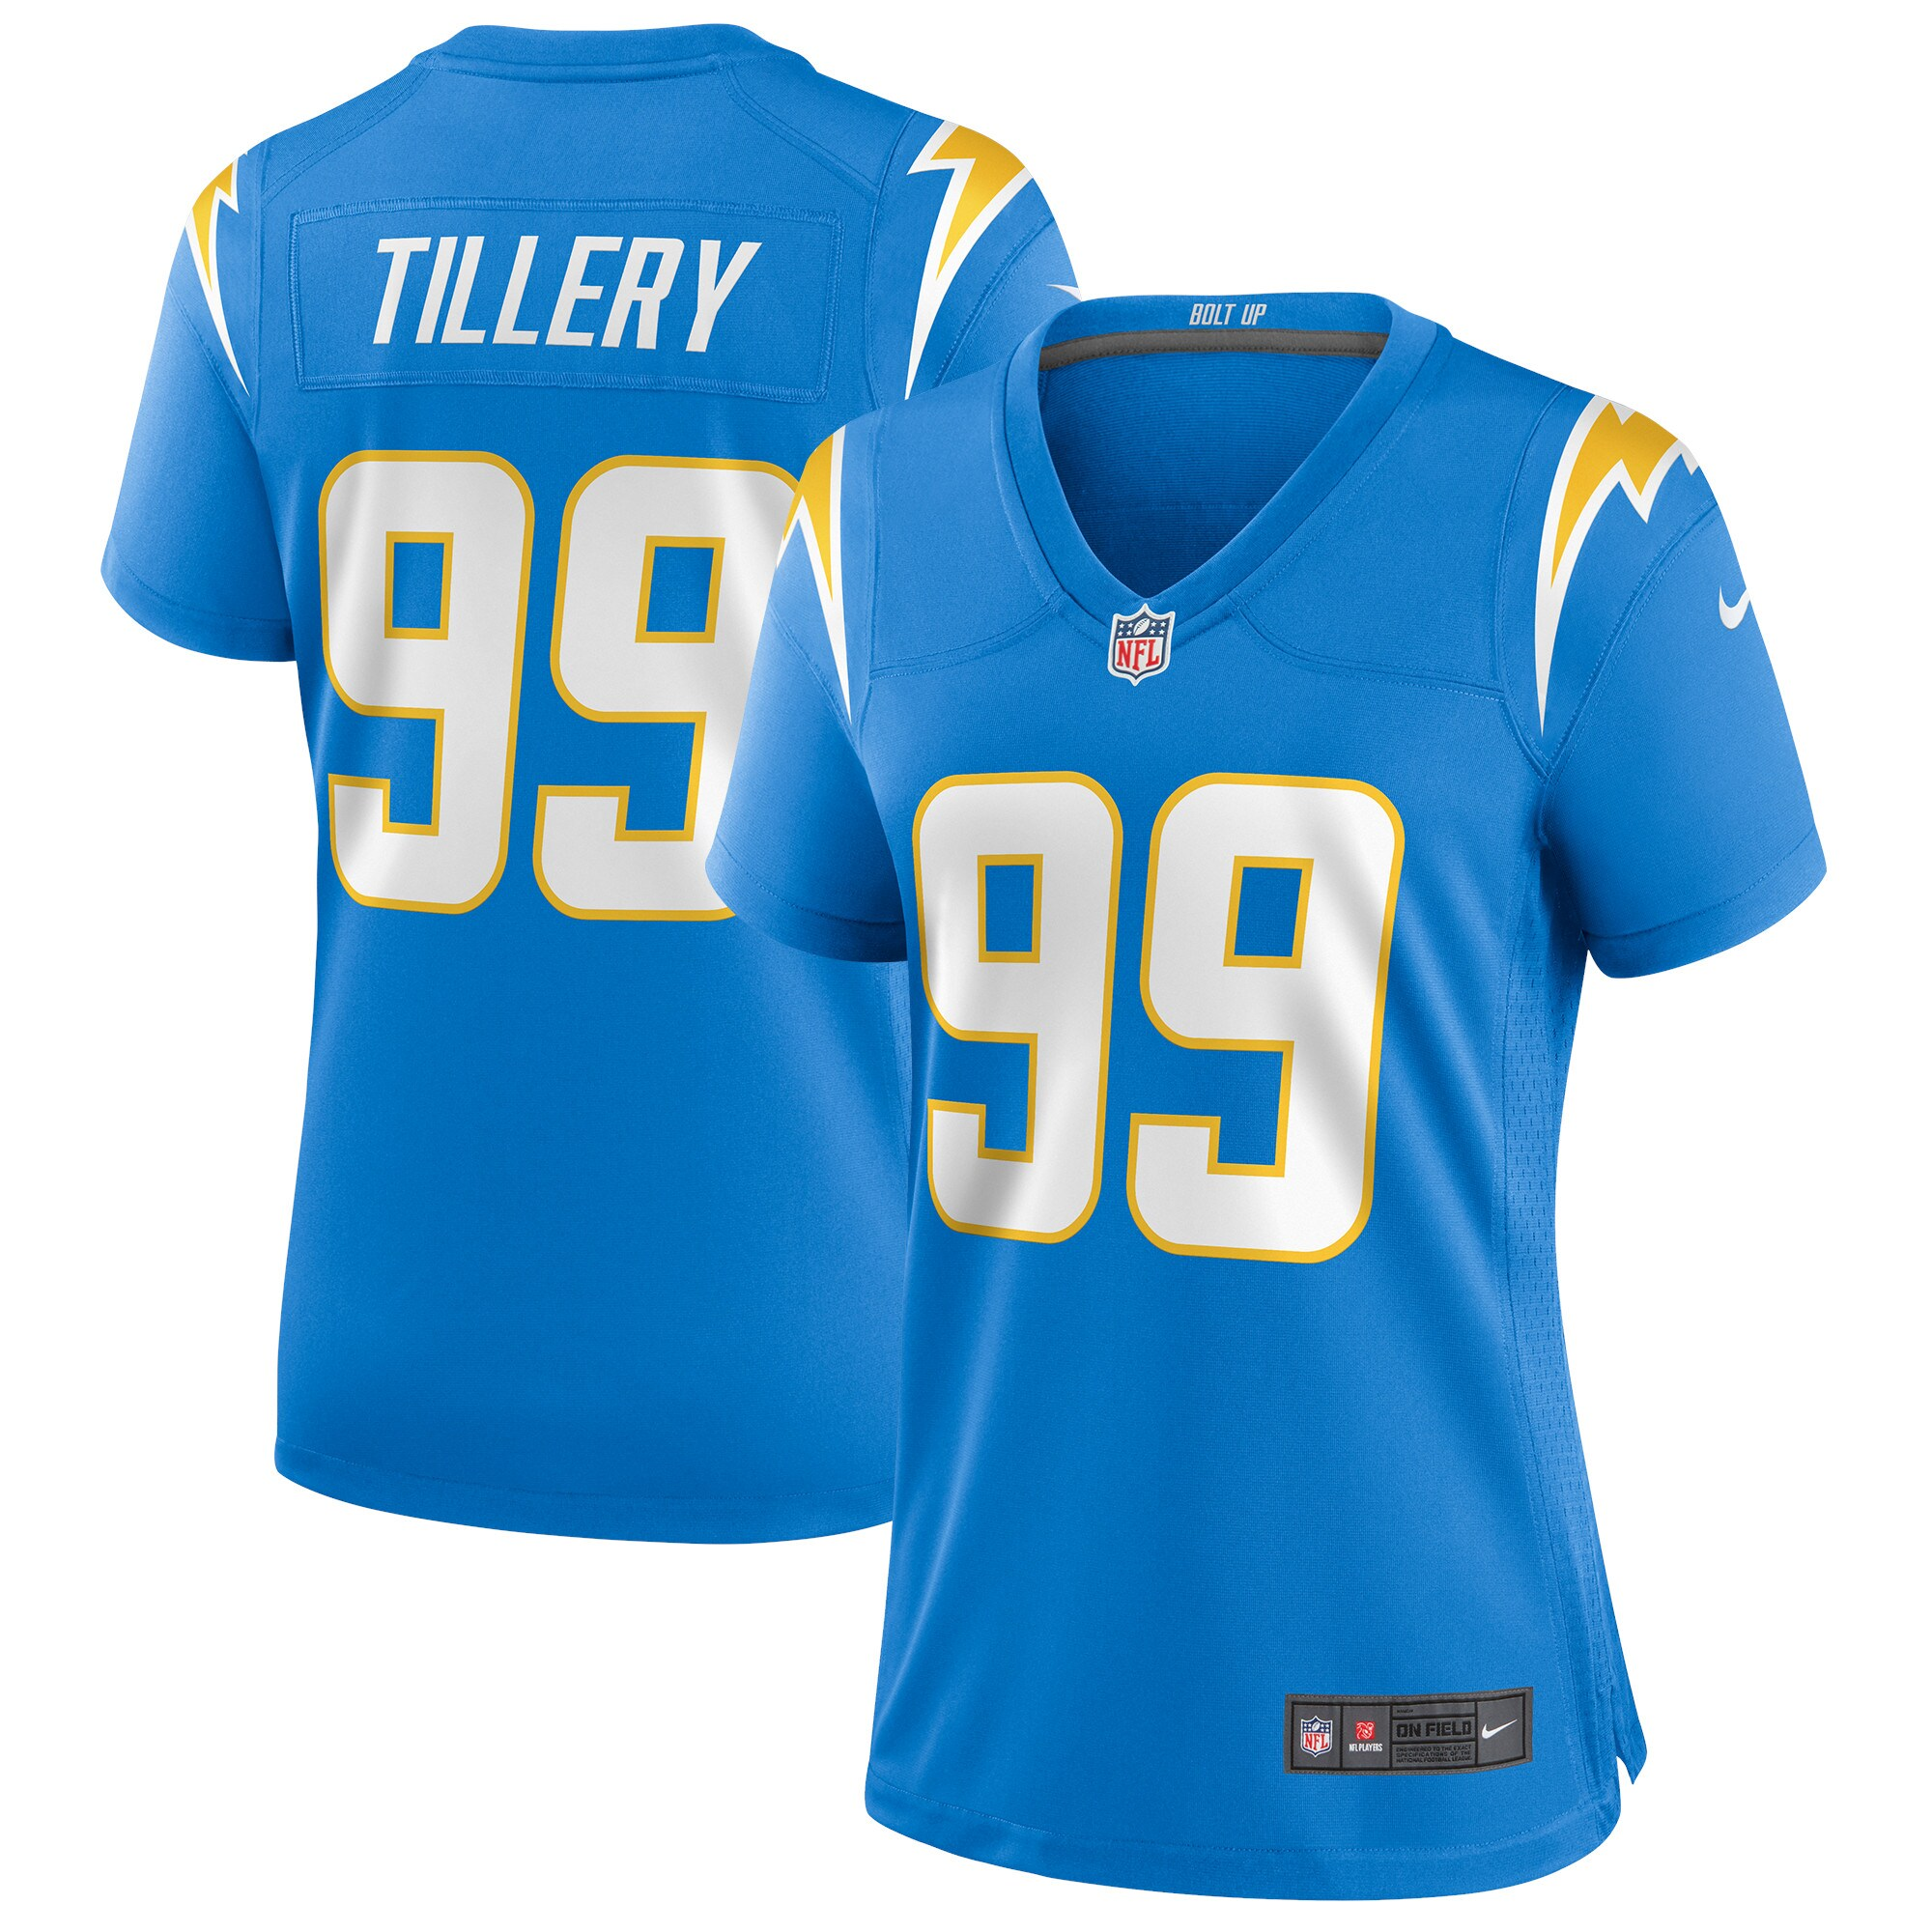 Jerry Tillery Los Angeles Chargers Nike Women's Game Jersey - Powder Blue